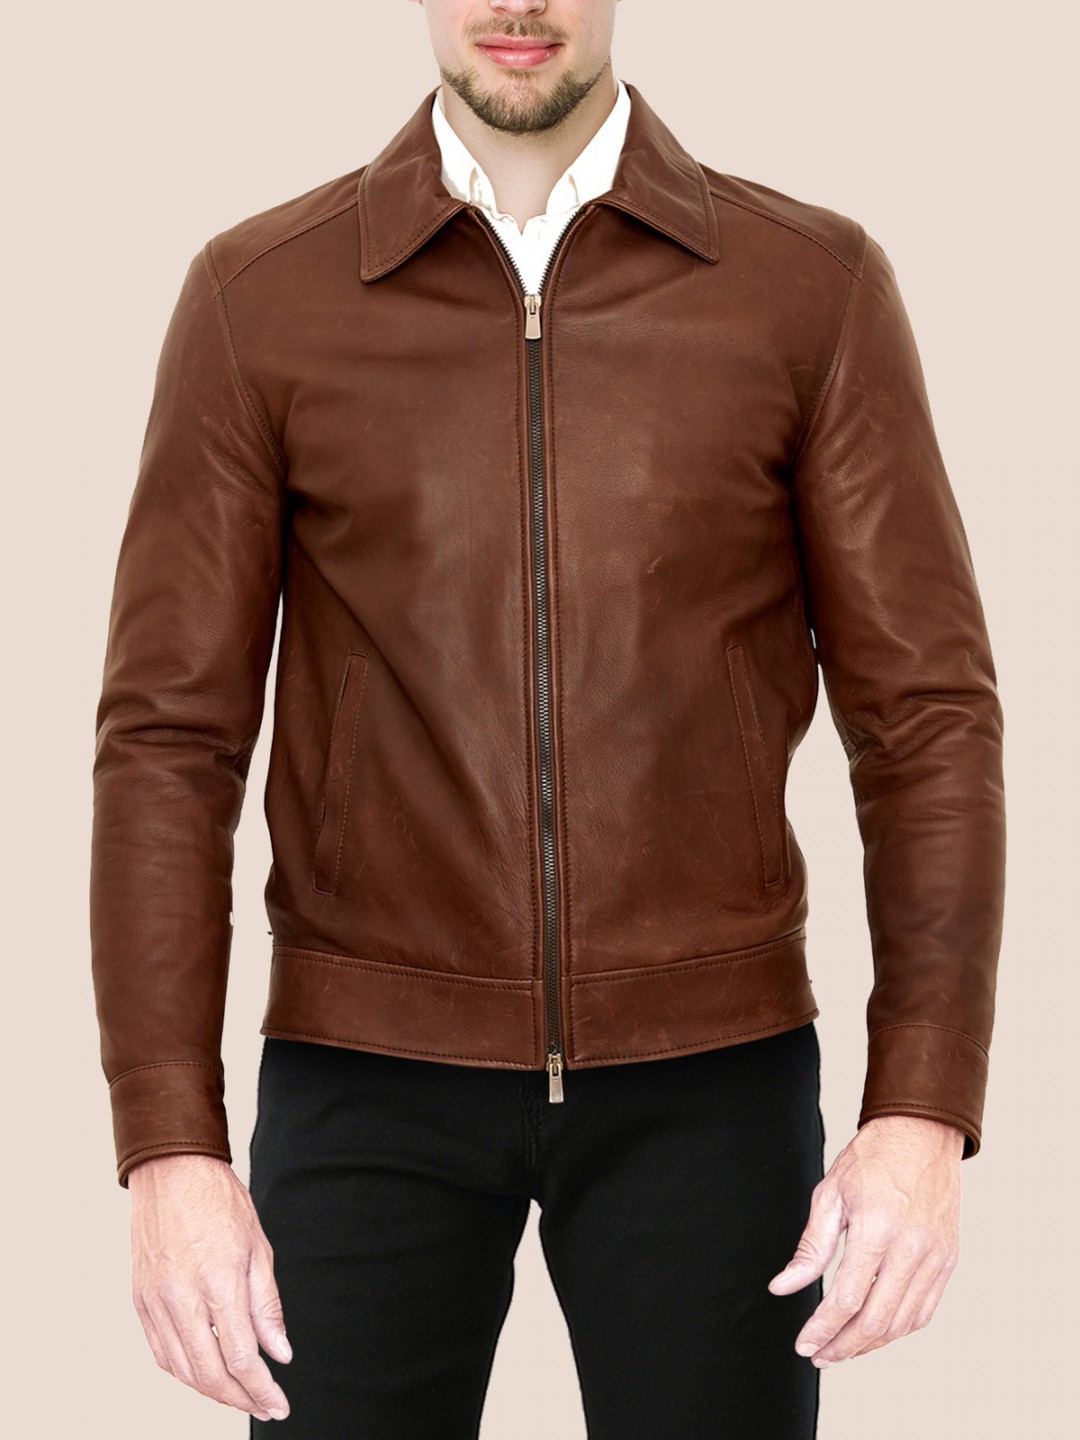 Dark Brown Classic Leather Jacket For Men - Samish Leather